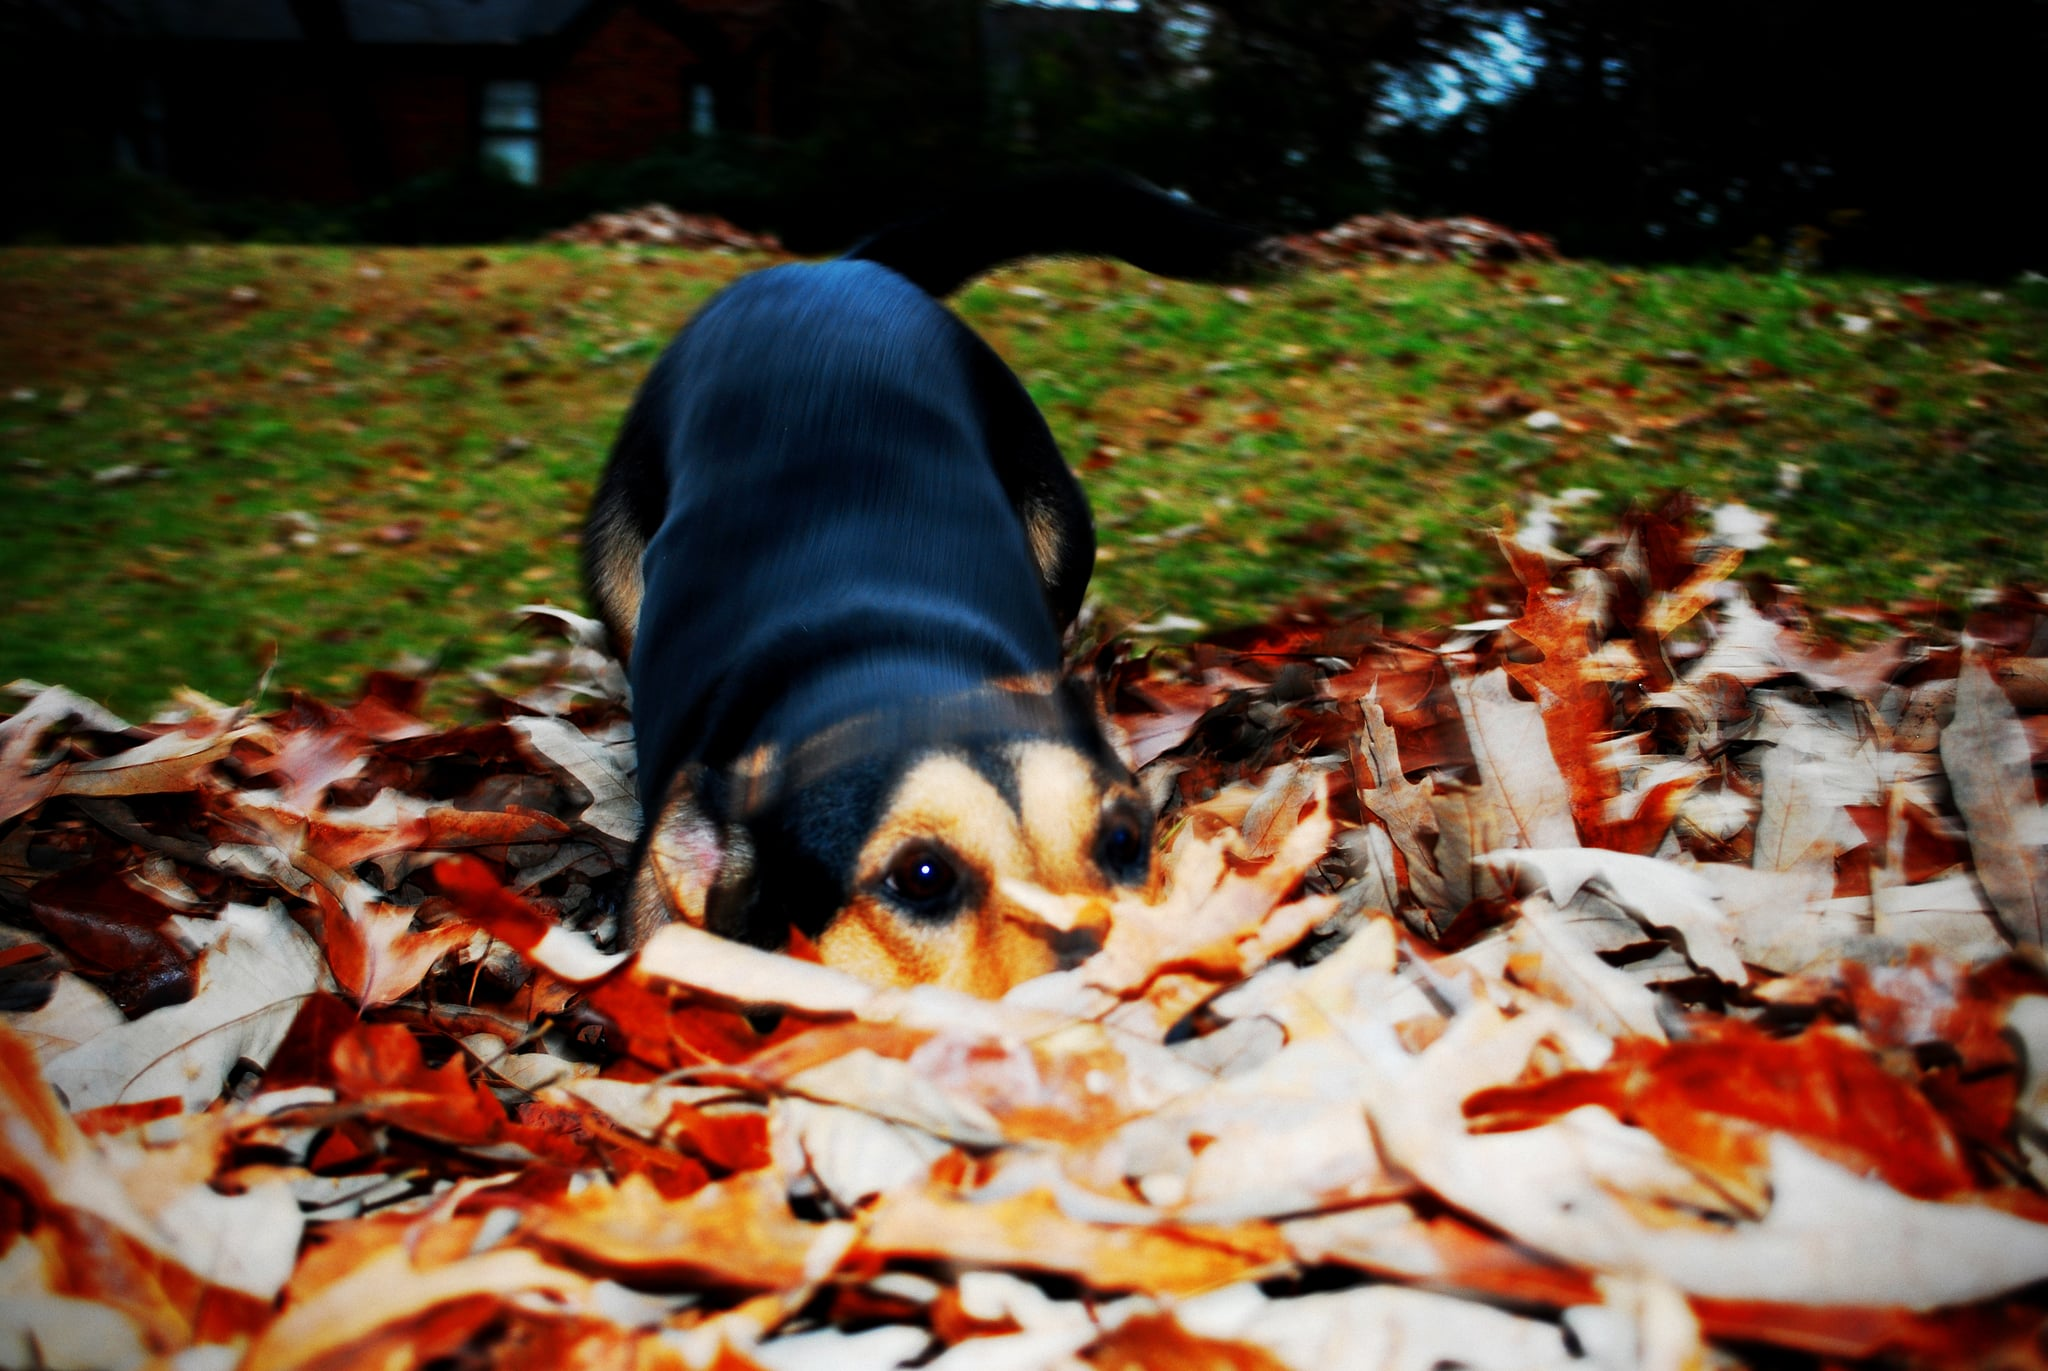 I am the creature that lives in the leaves! Source: Flickr user B Rosen